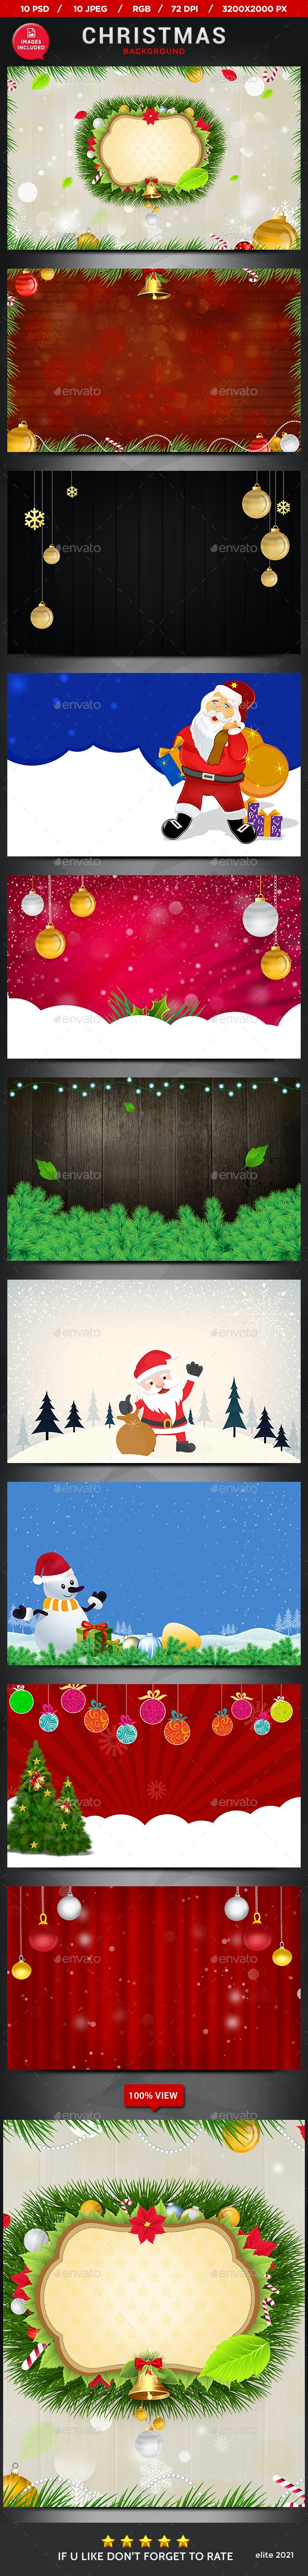 Christmas Backgrounds - 10 Designs - Backgrounds Graphics